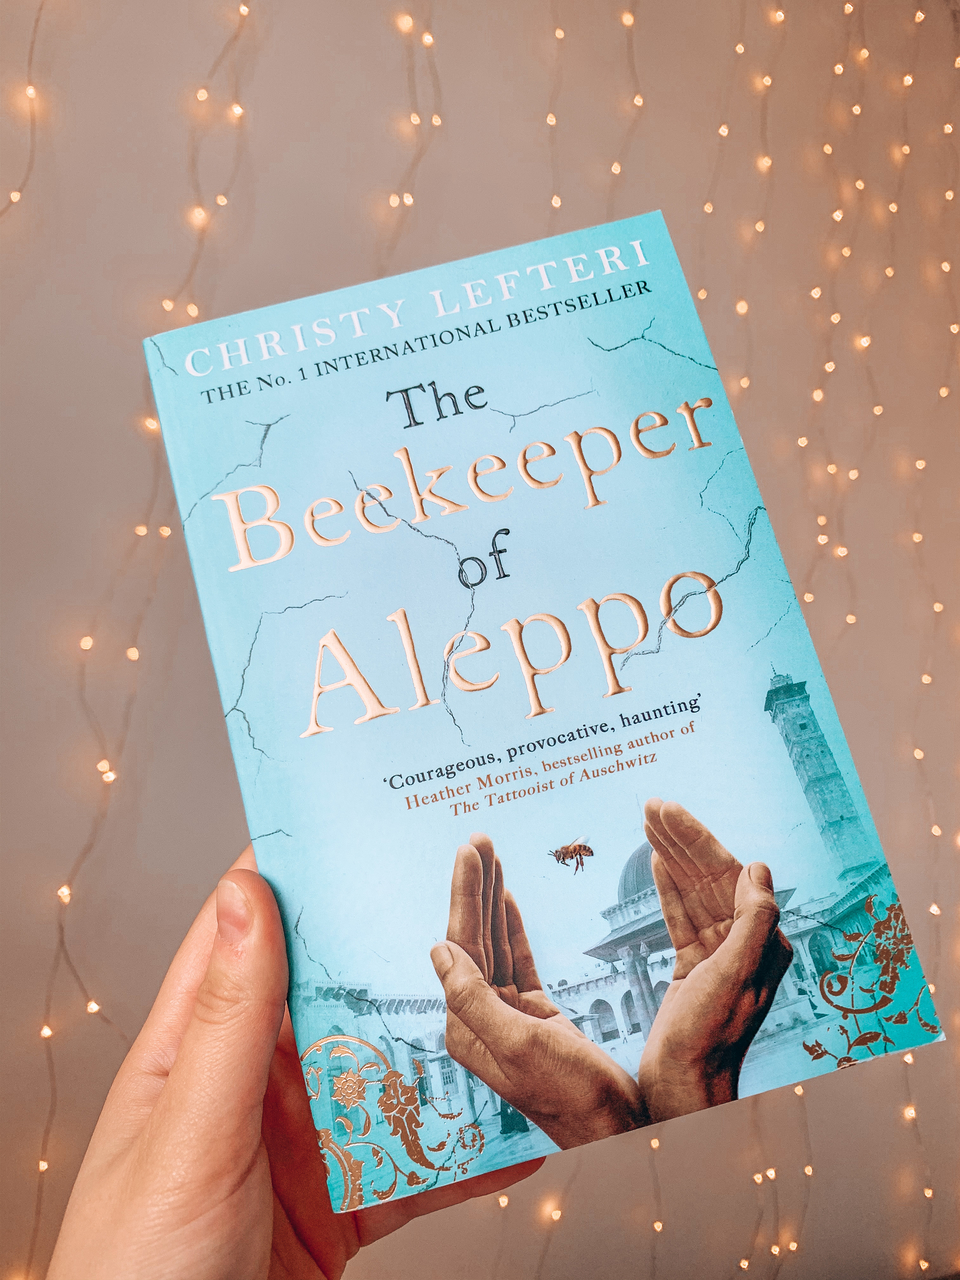 20 books to read in 2020 The Beekeeper of Aleppo by Christy Lefteri blue front cover featuring a bee and hands